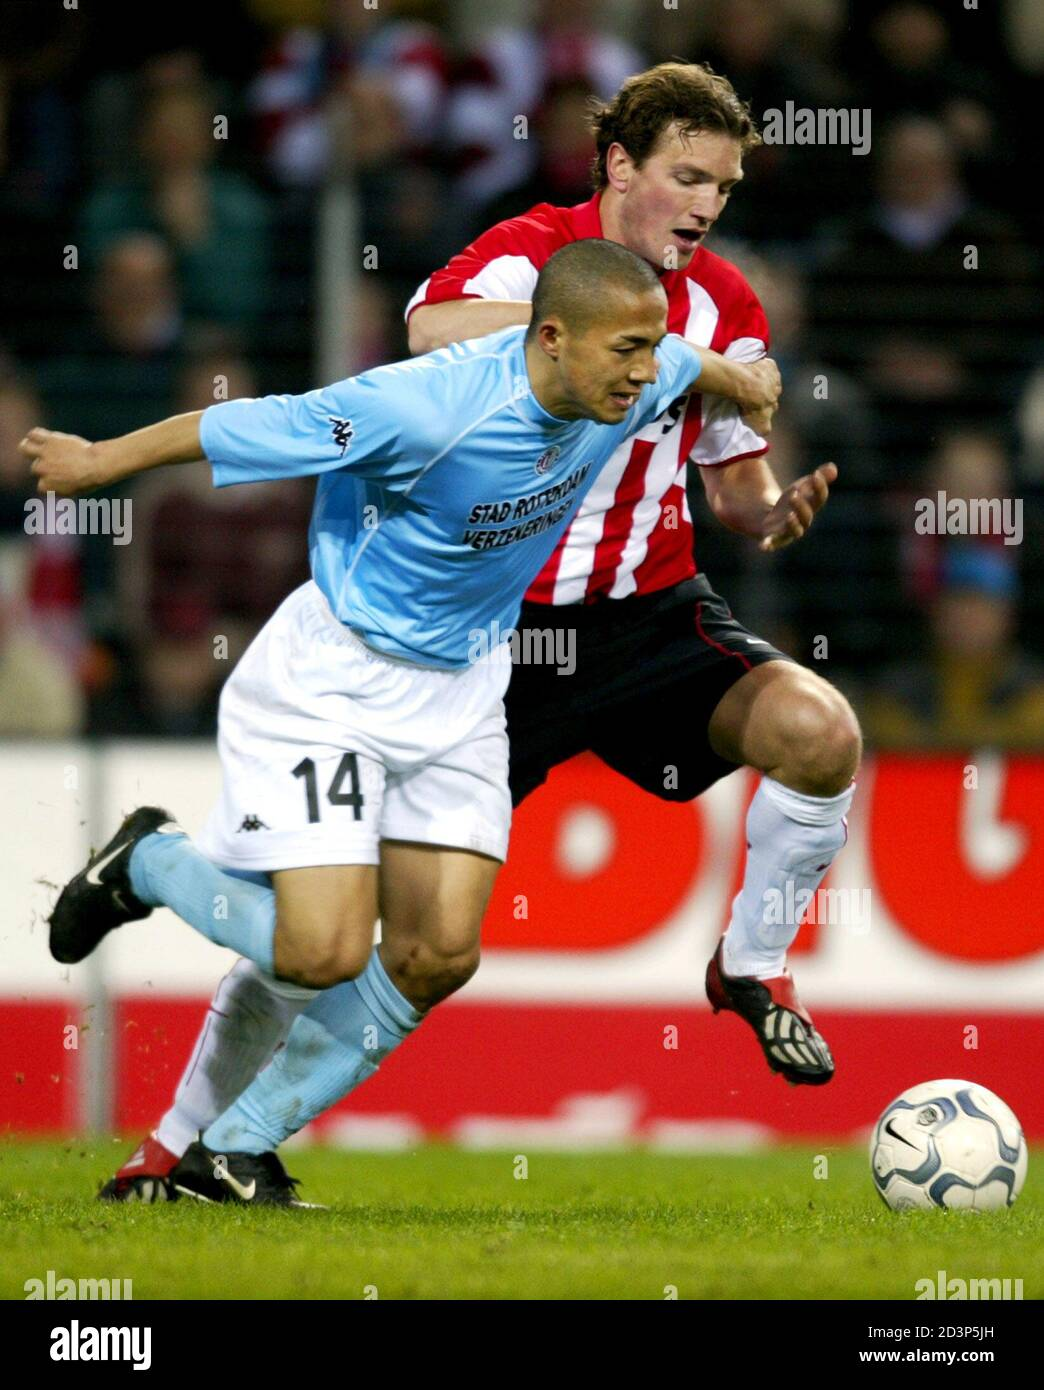 https www alamy com feyenoord striker ono challenges psv defender bruggink during their first leg quarter finals uefa cup match feyenoord striker shinji ono l challenges psv defender arnold bruggink during their first leg quarter finals uefa cup match in eindhoven march 14 2002 the match ended in a 1 1 draw reutersjerry lampen image380959449 html